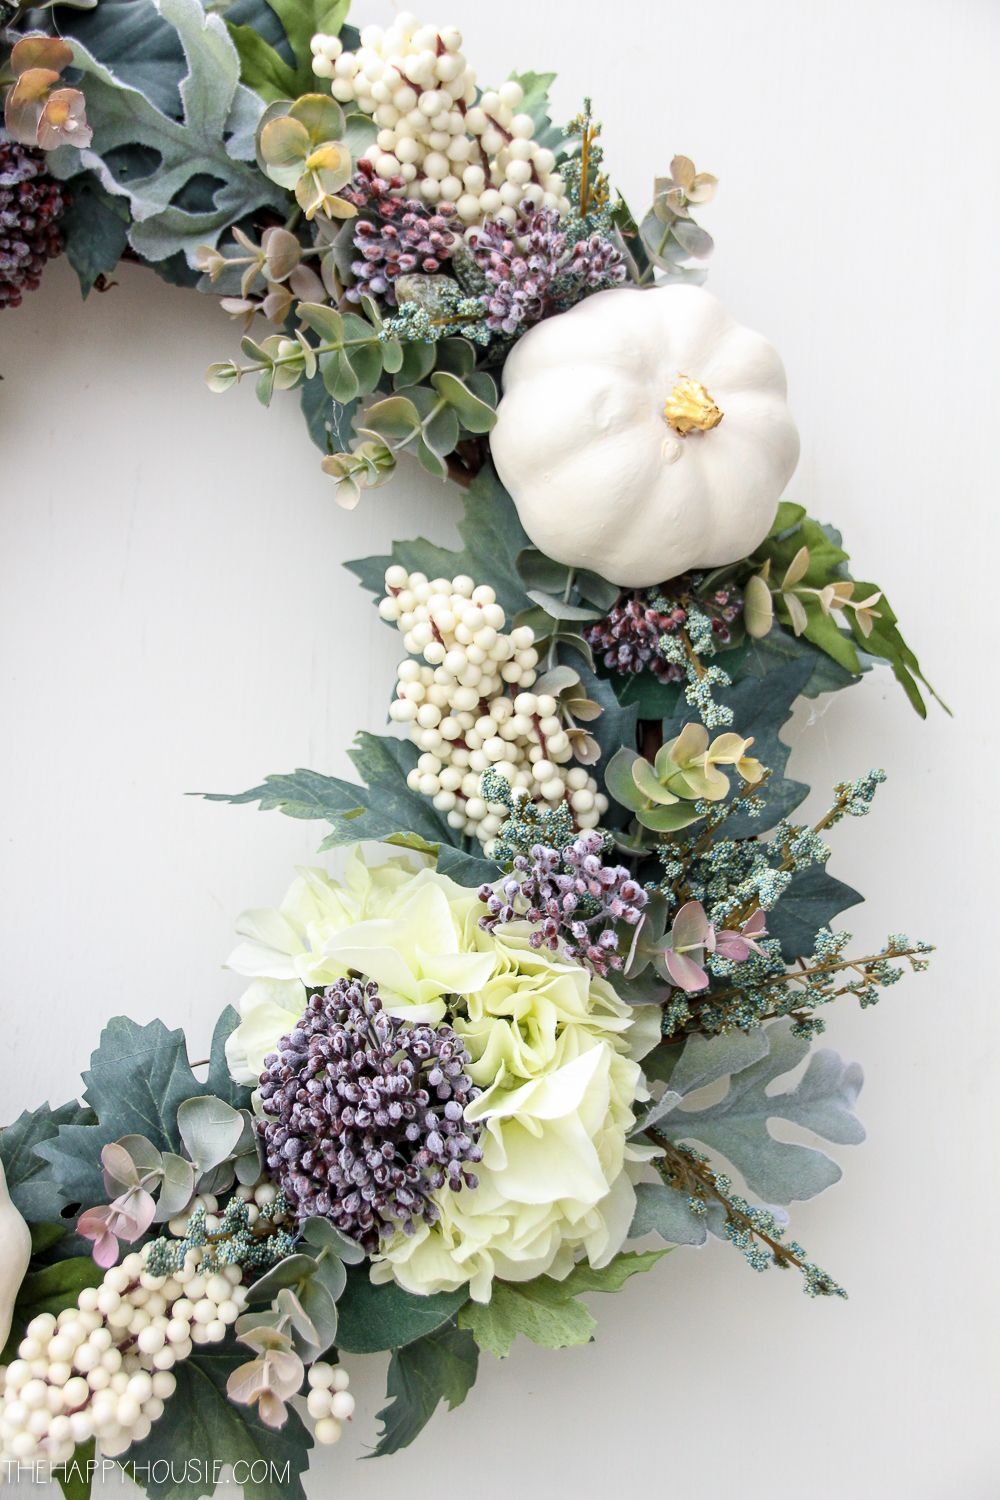 How to Make a High-End Style DIY Fall Wreath on a Budget ...